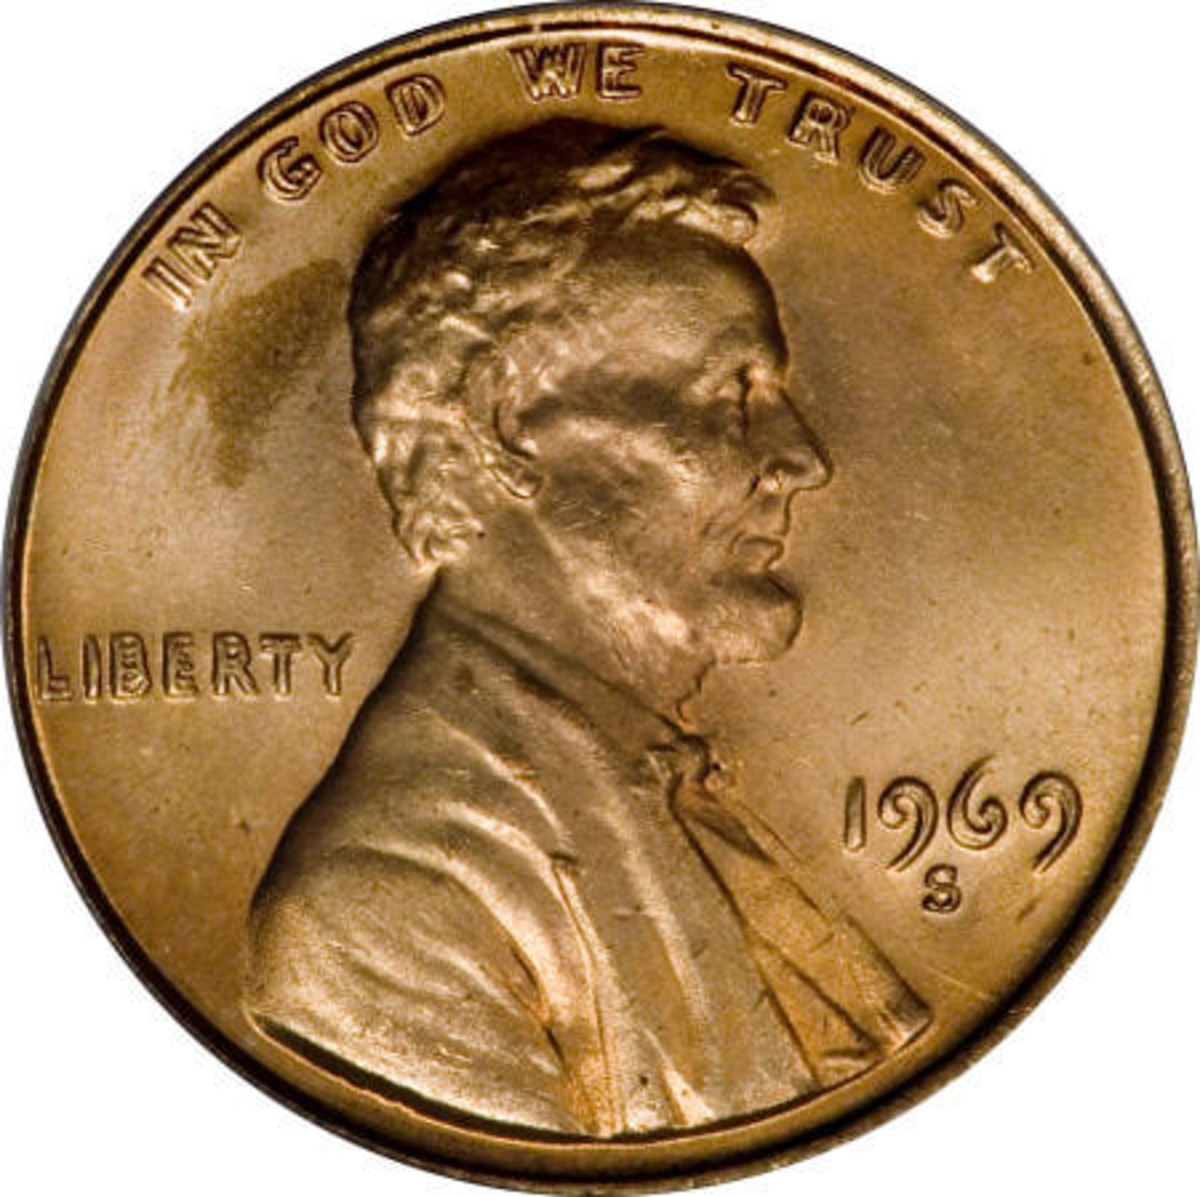 This Lincoln Coin is valued at $35.000 though